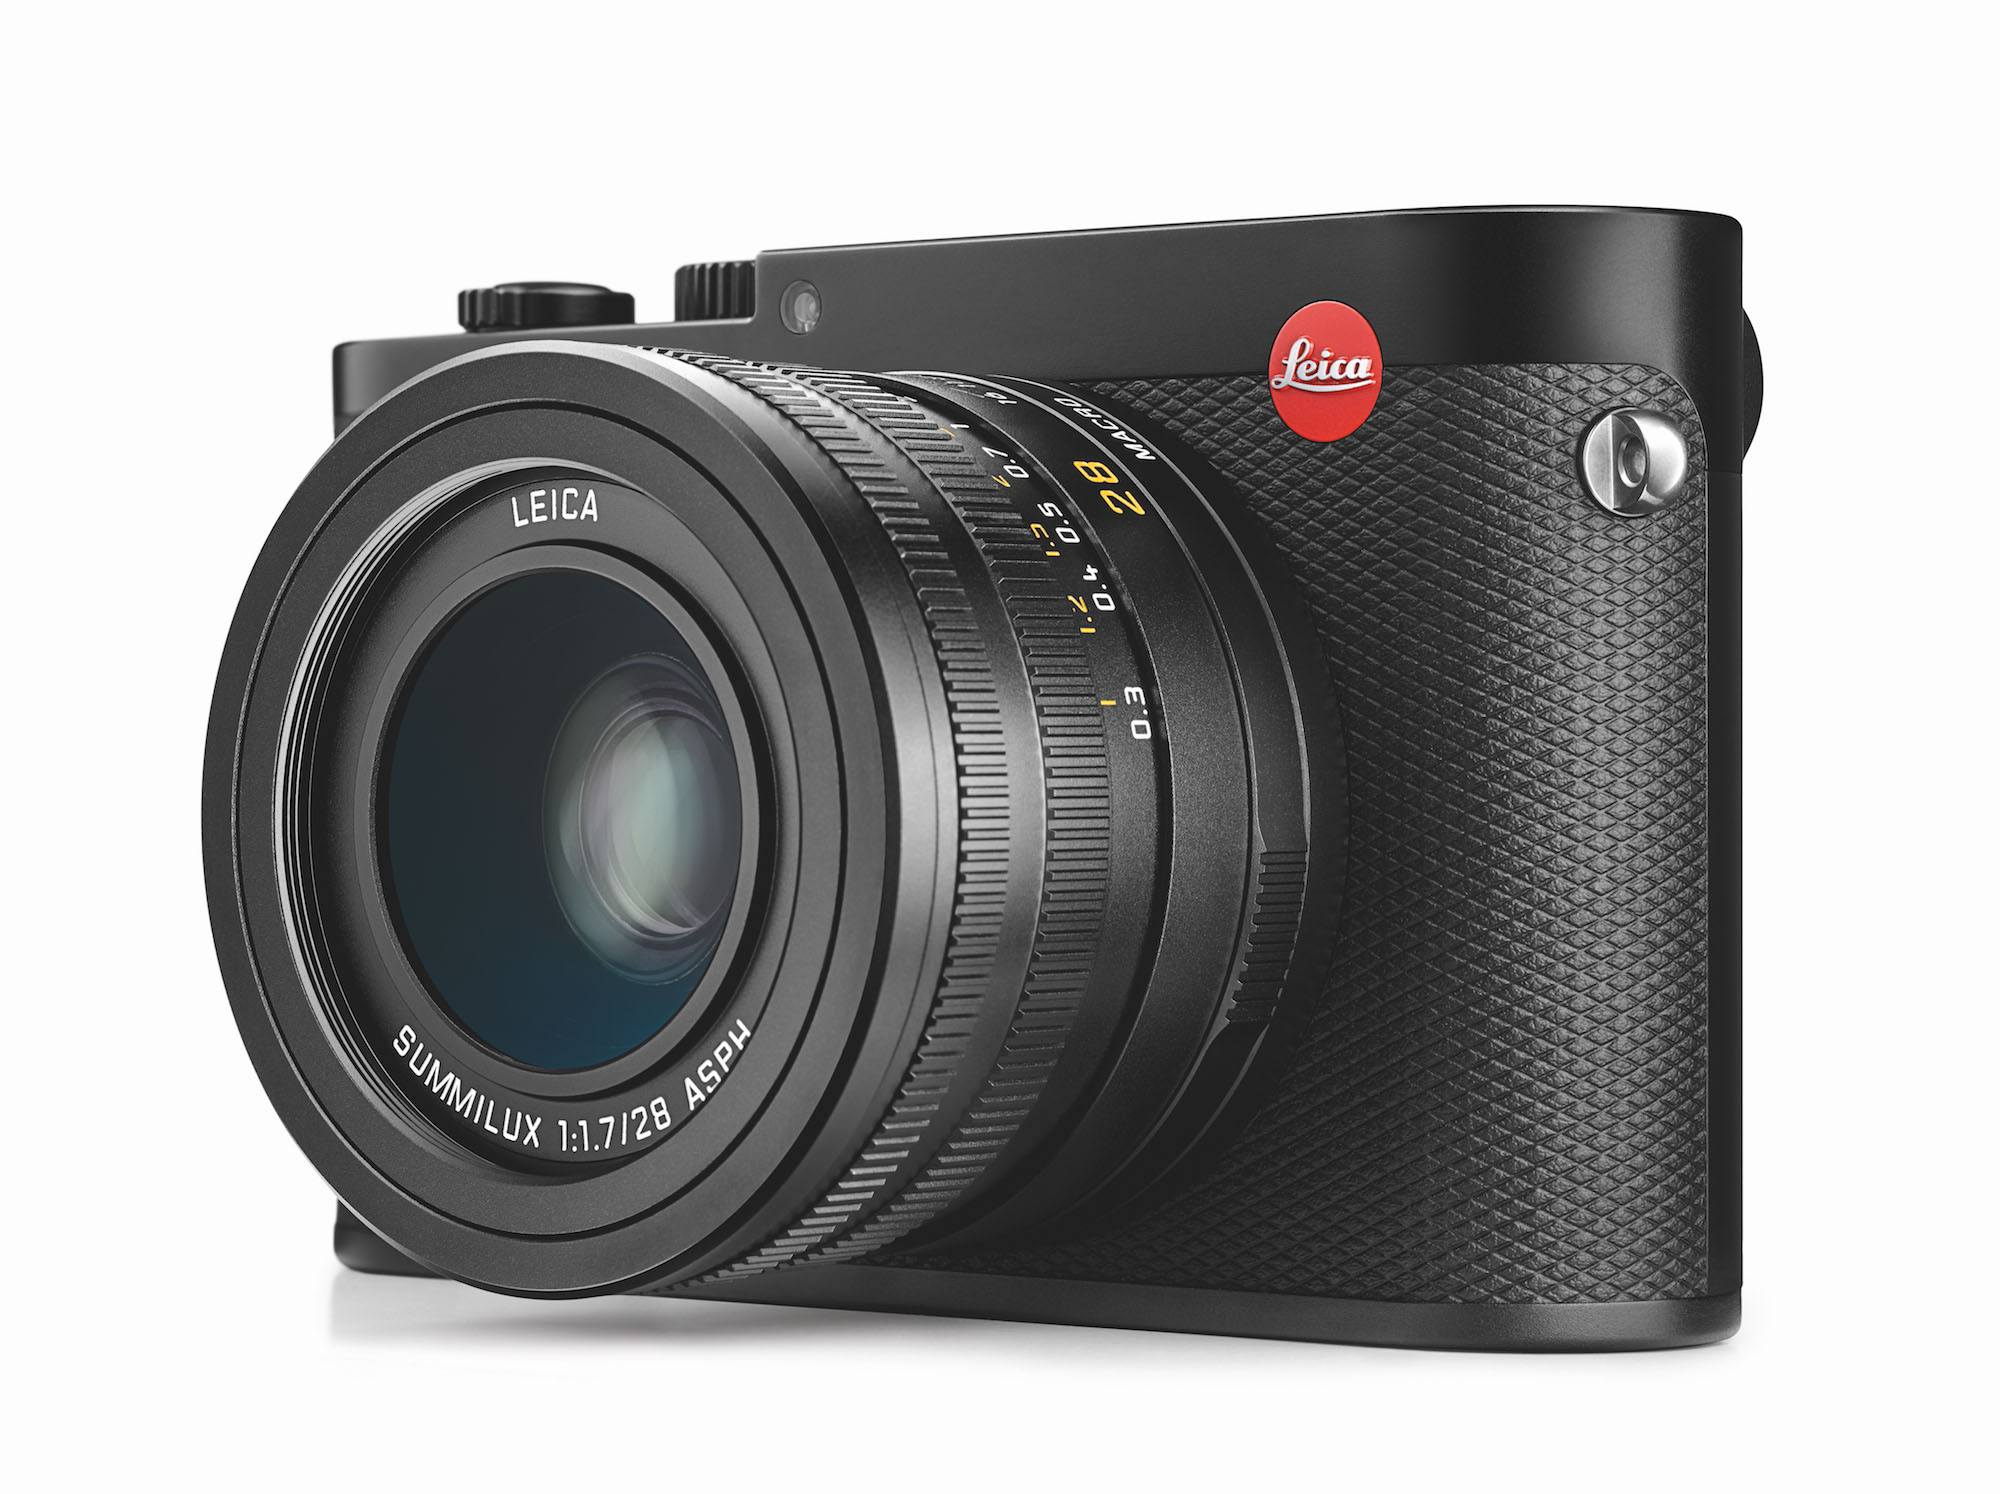 Why the Leica Q Is the Best Travel Camera: A Hands-On Review